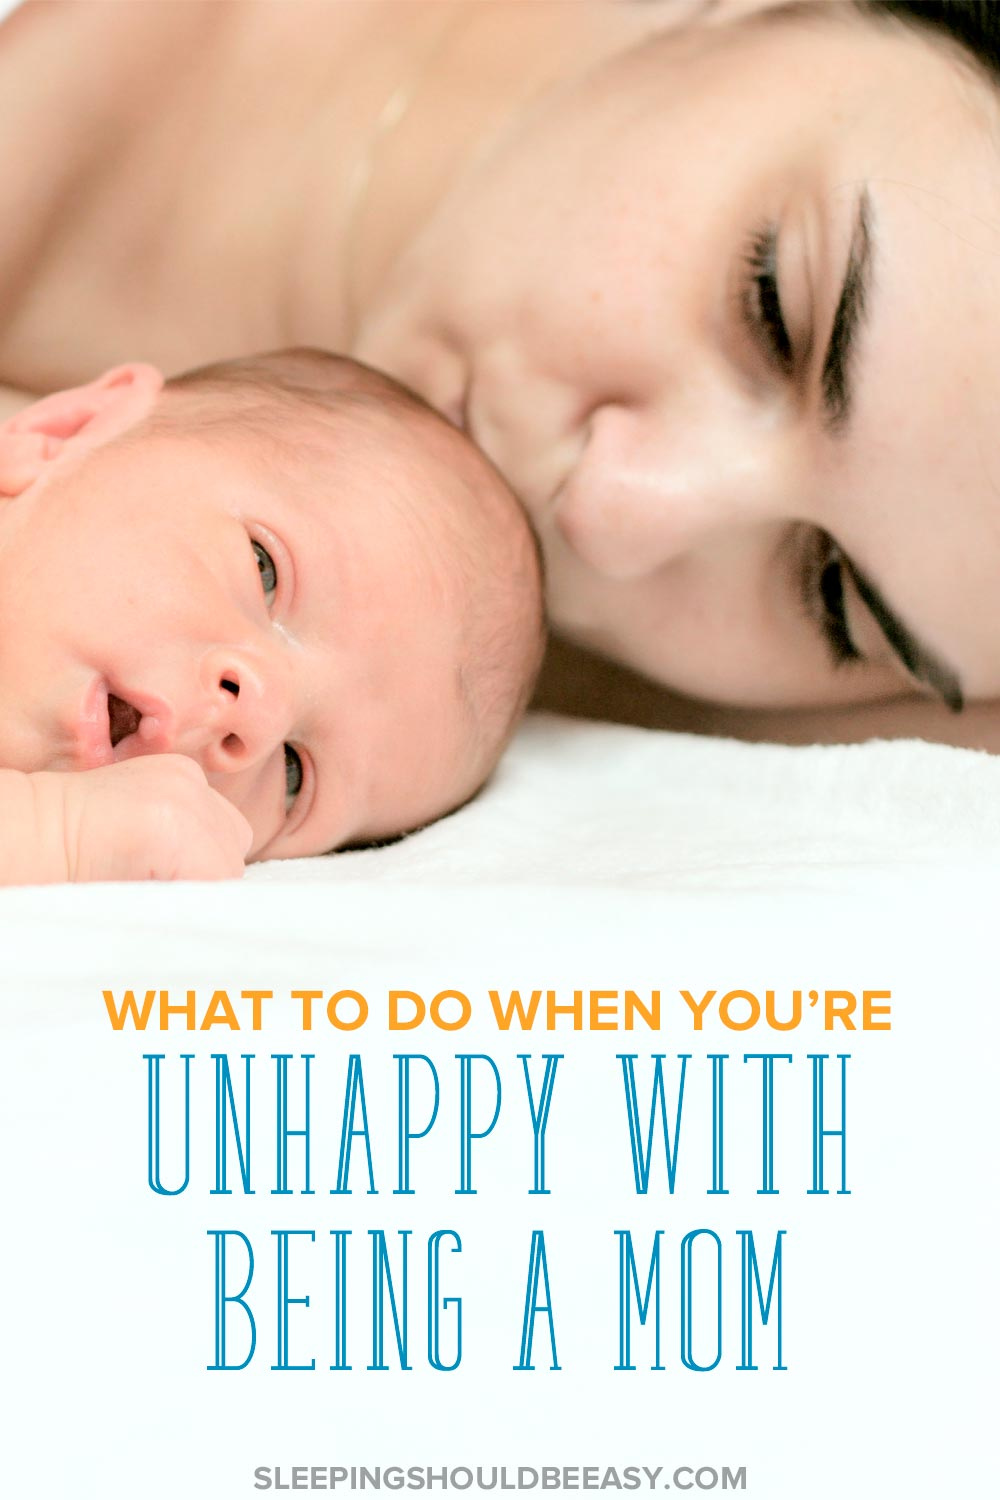 Not all moments of motherhood are perfect. In fact, being a mom can be downright hard. Discover how to be a happy mom even in the toughest moments.